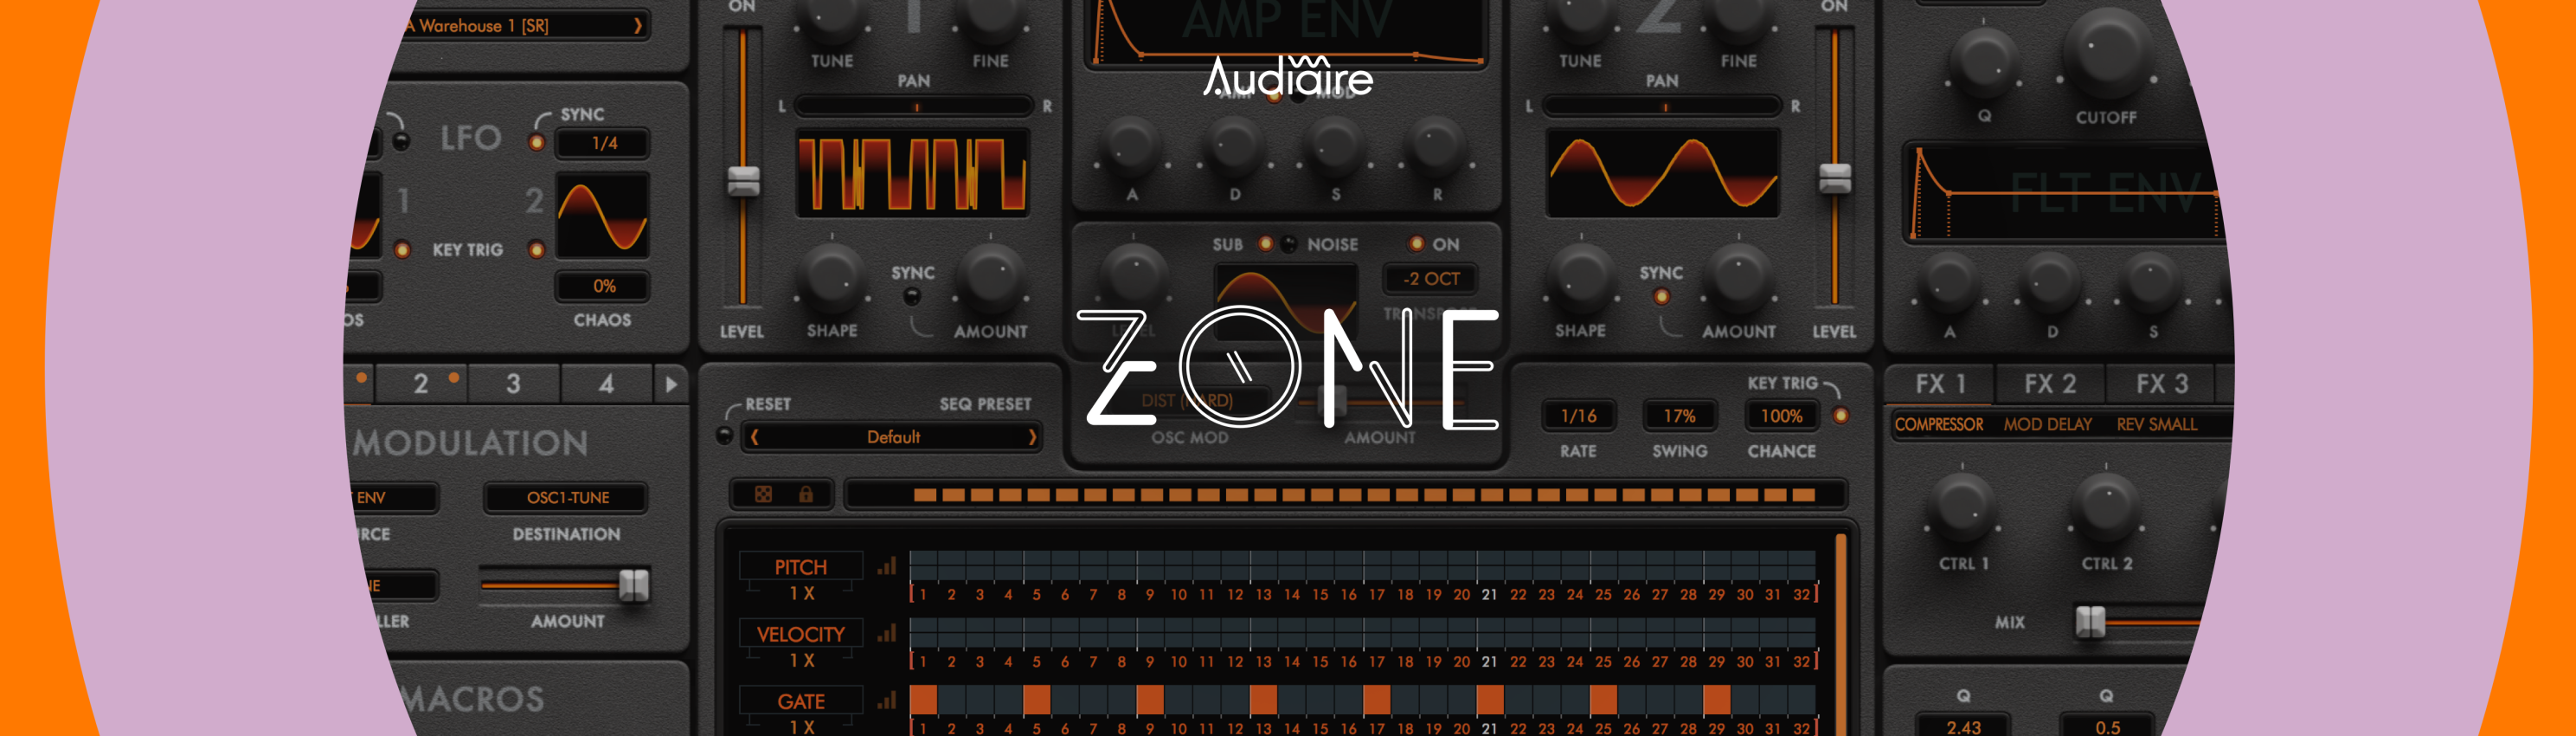 Audiaire Zone Synth